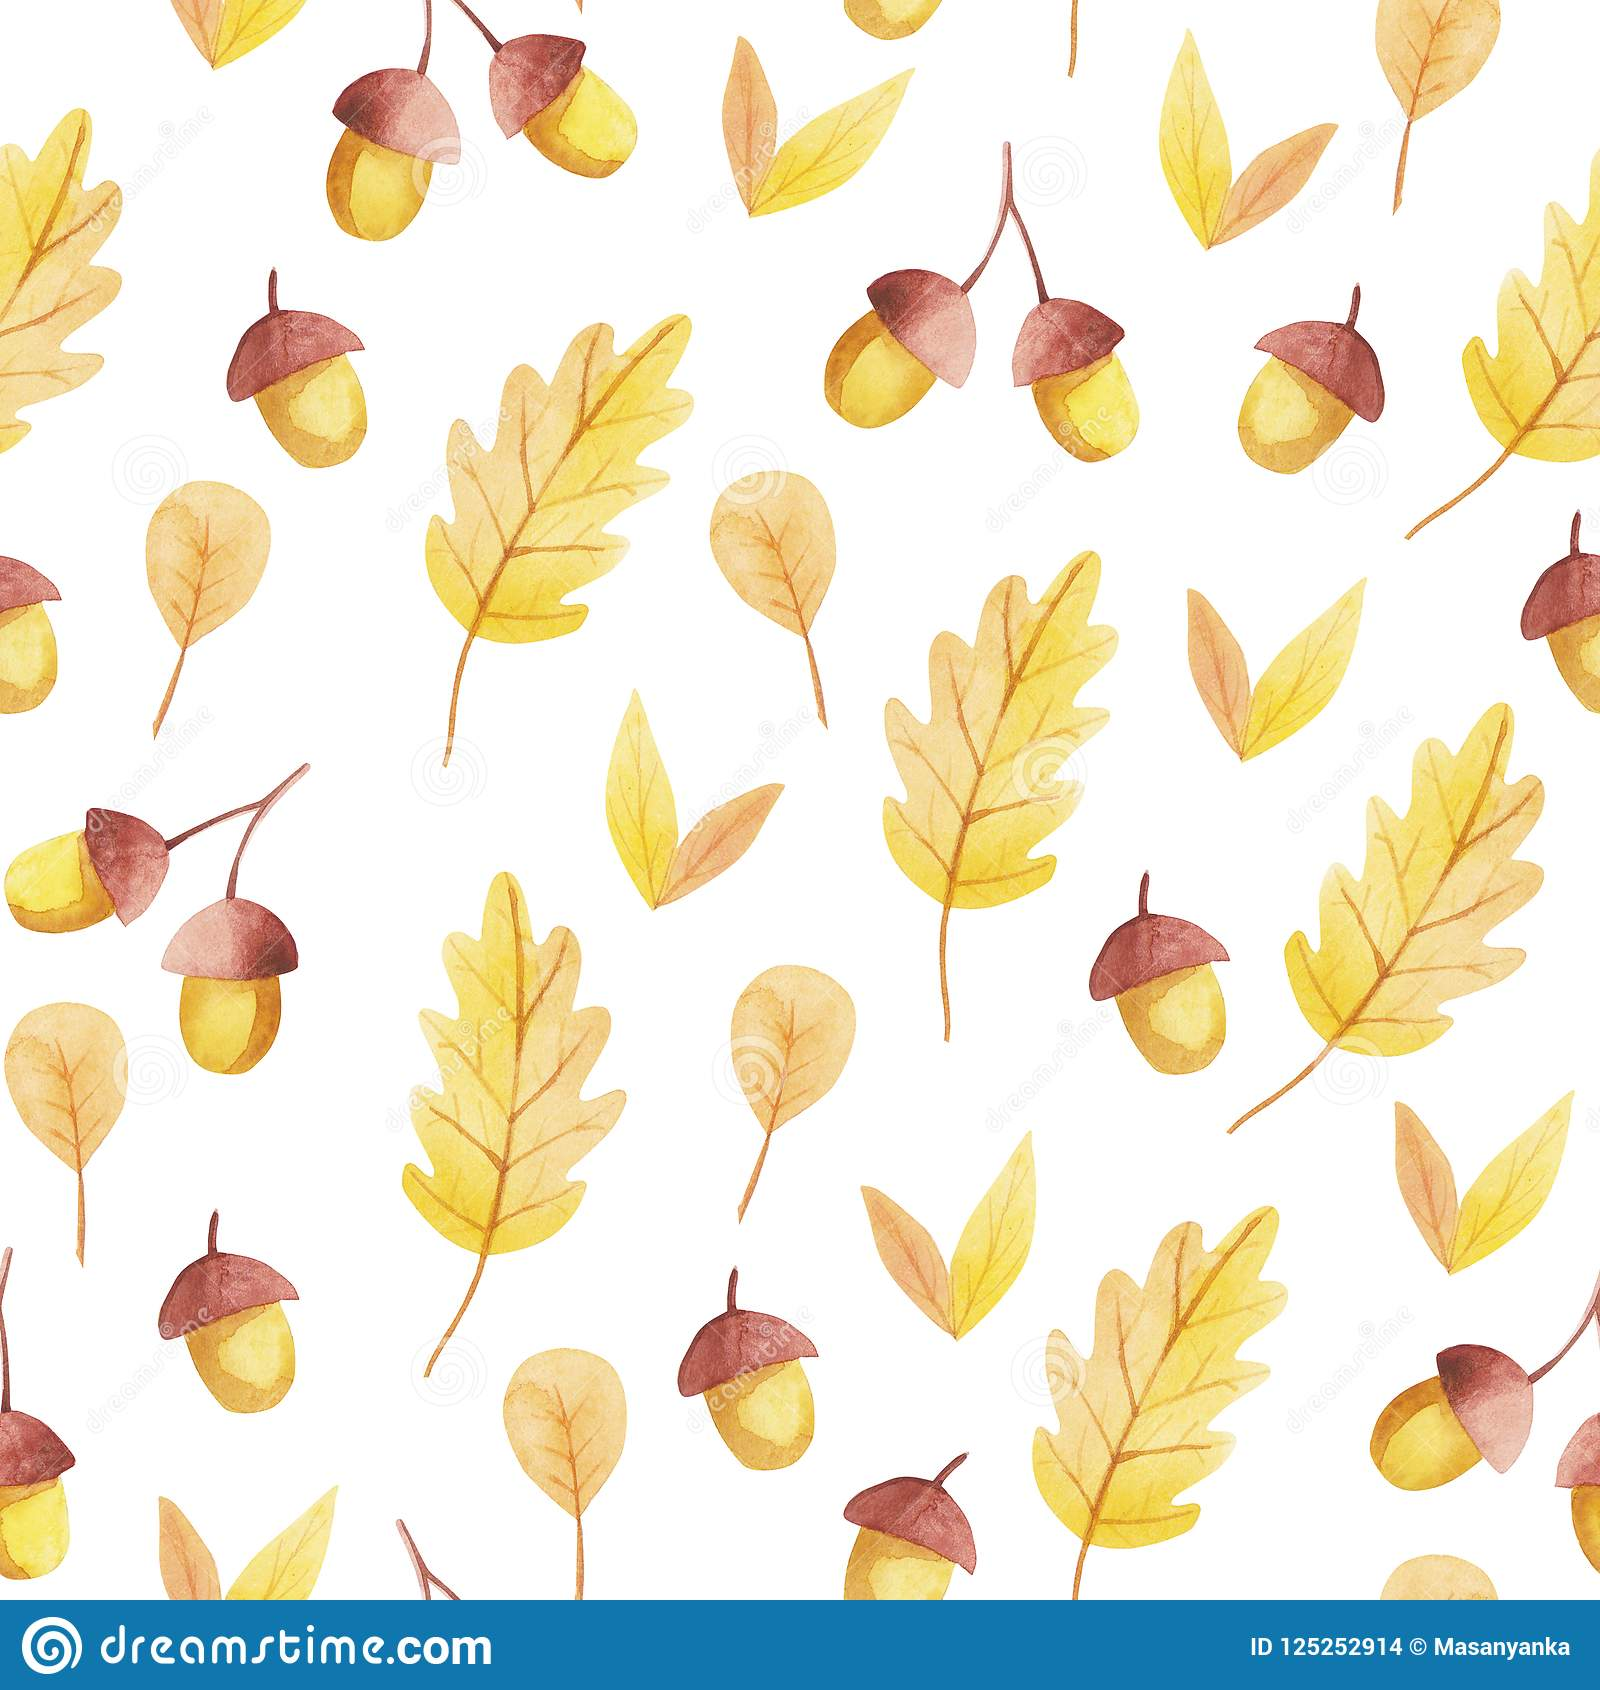 Acorn and yellow leaf seamless pattern. Fall vibes.